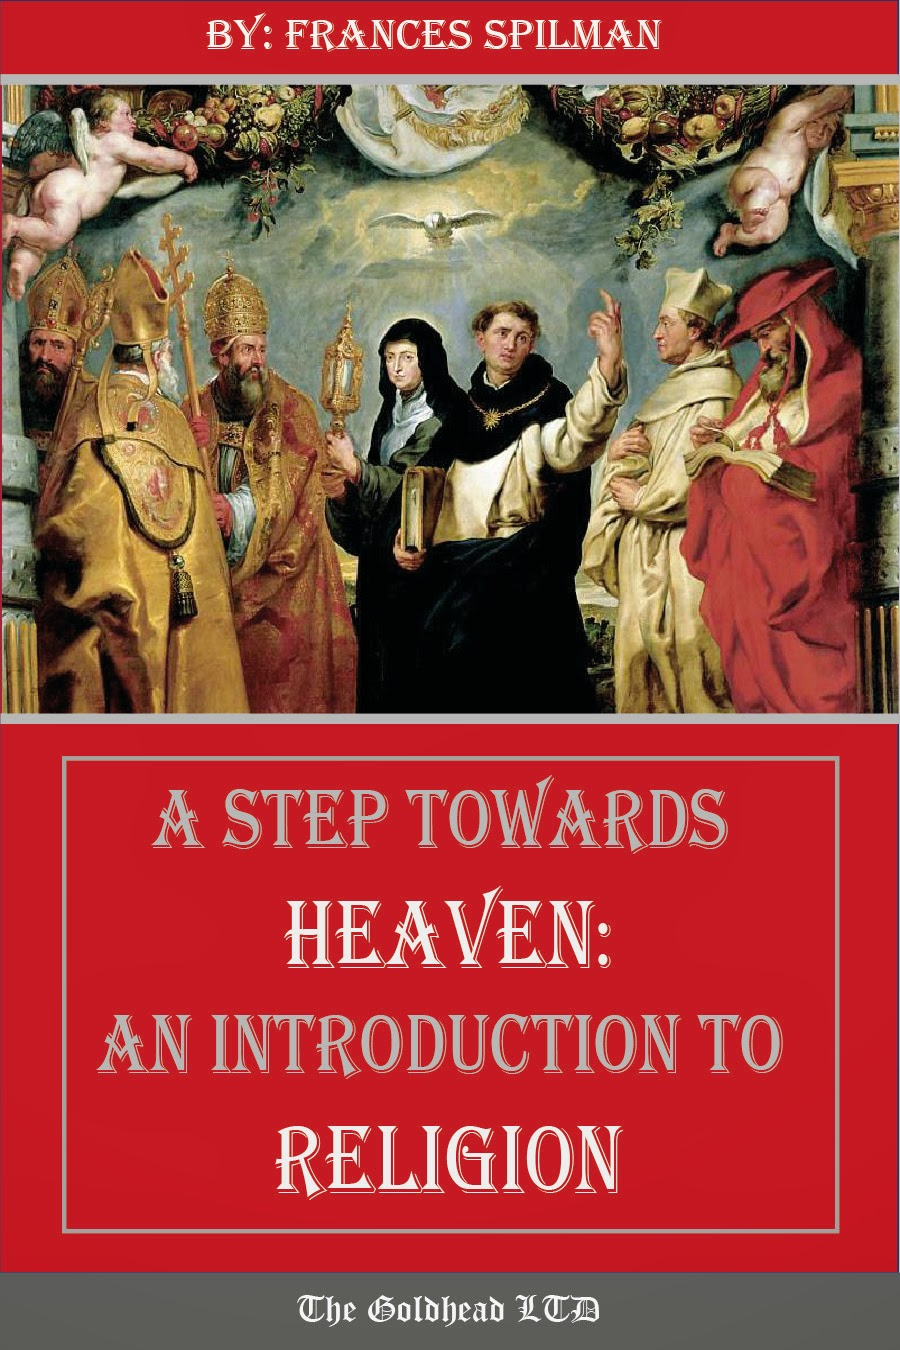 http://www.lulu.com/shop/frances-spilman/a-step-towards-heaven-an-introduction-to-religion/paperback/product-22056069.html